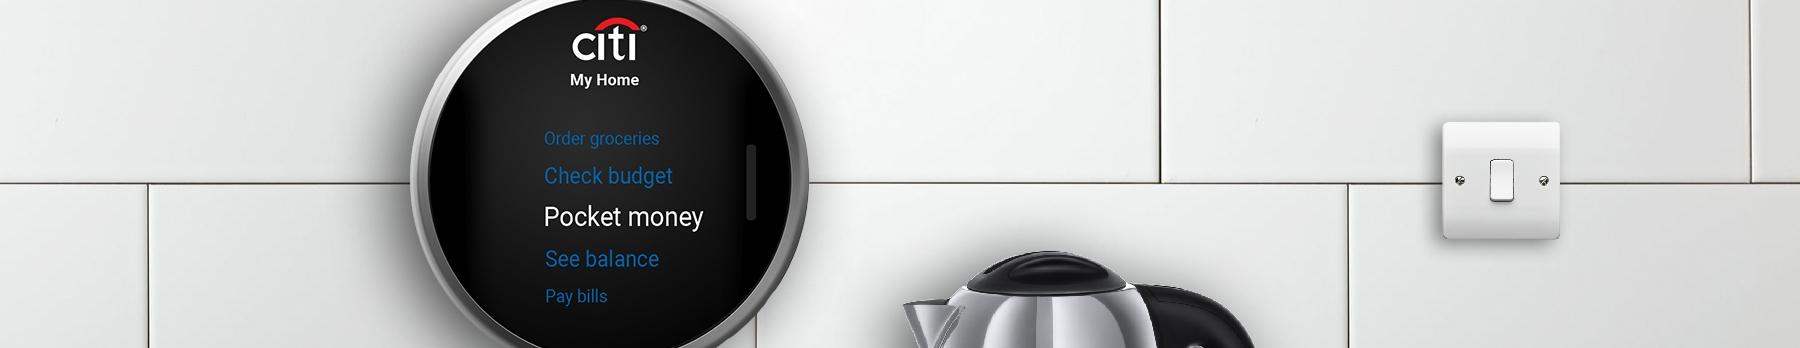 Citi wall helper smart home device on white tiles in kitchen setting